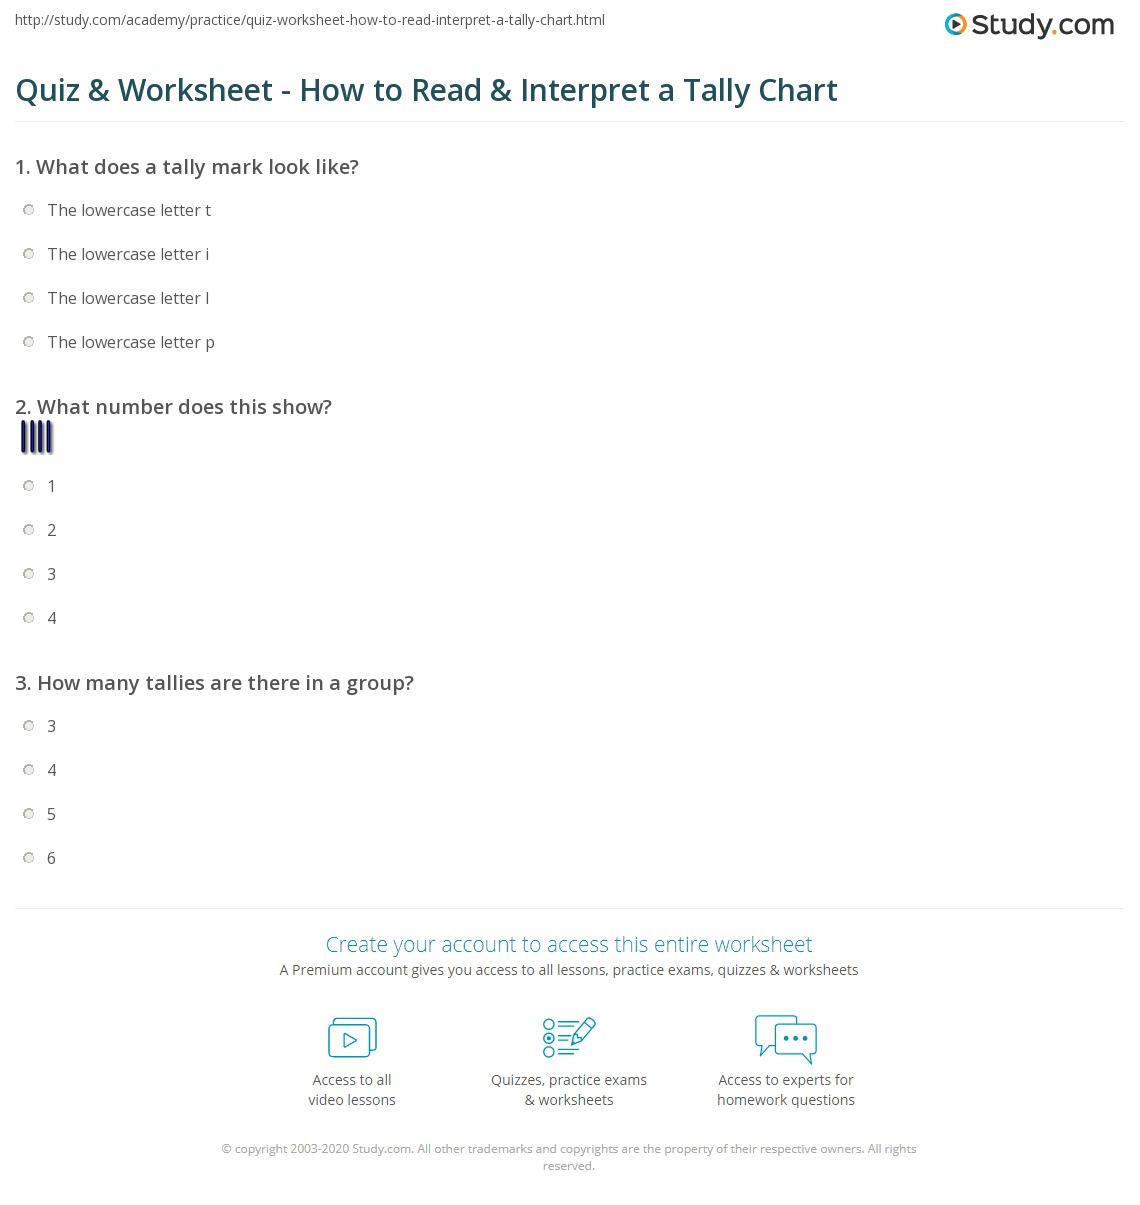 worksheet Tally Chart Worksheets quiz worksheet how to read interpret a tally chart study com print reading interpreting charts worksheet